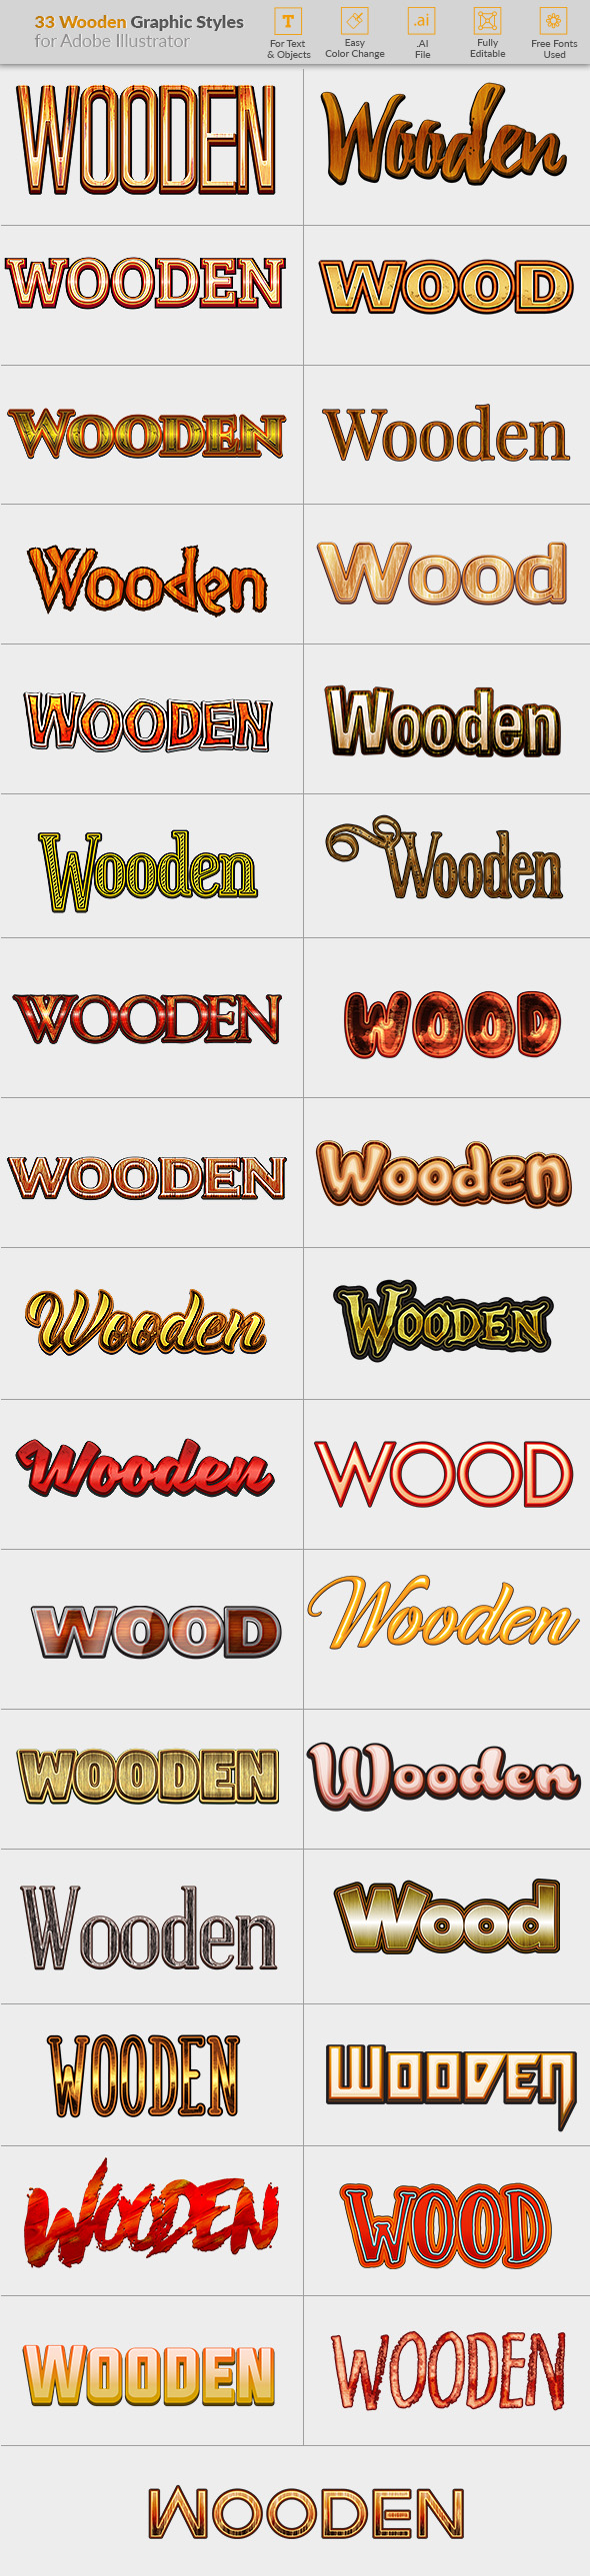 33 Wooden Graphic Styles for Illustrator - Styles Illustrator